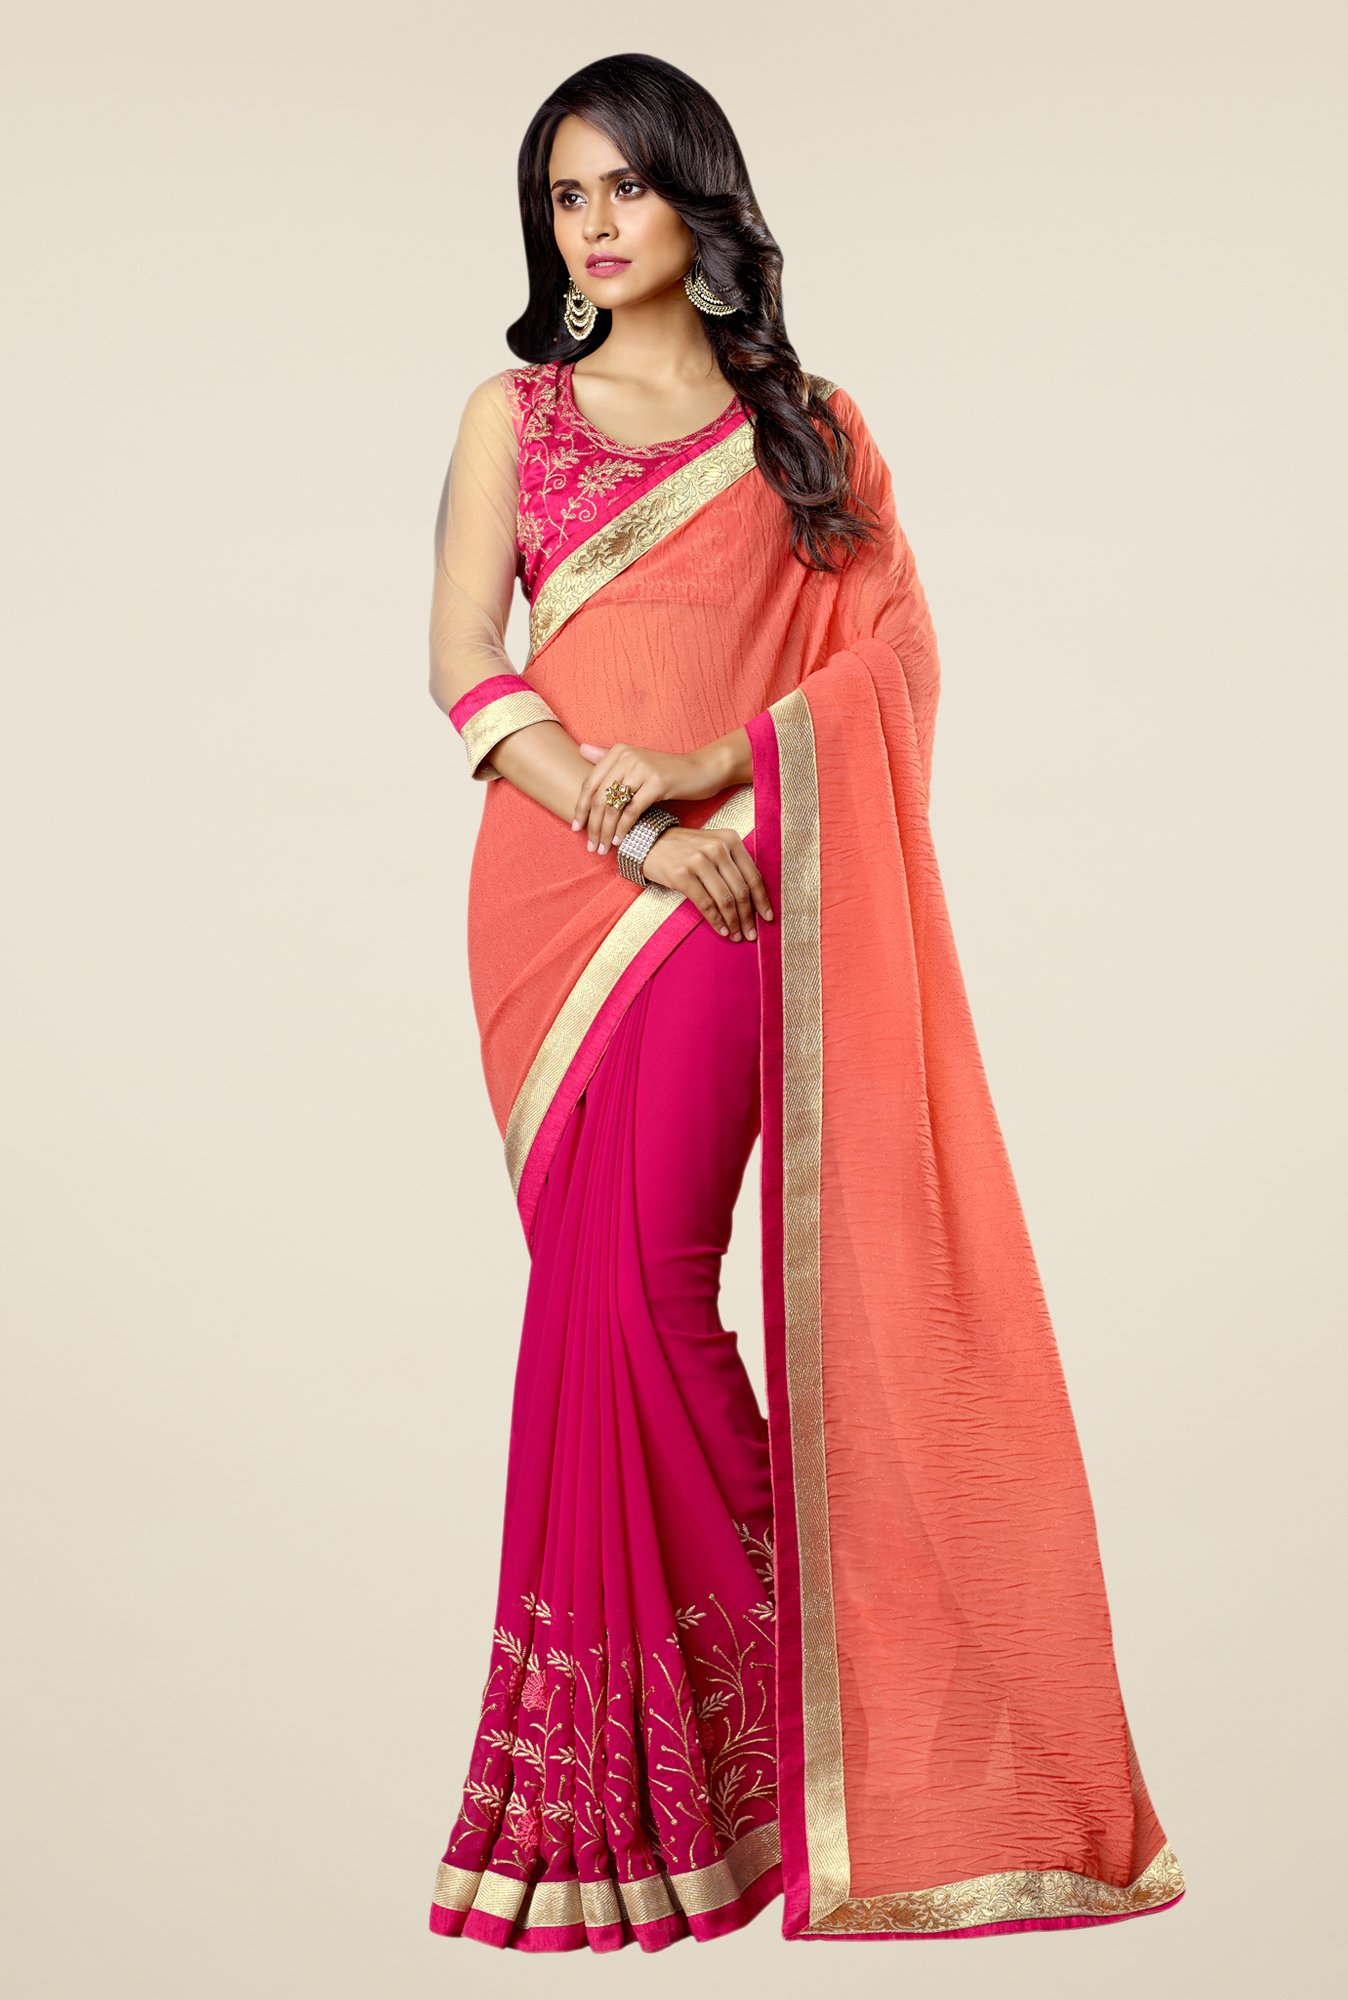 Triveni Magenta & Orange Embroidered Faux Georgette Saree